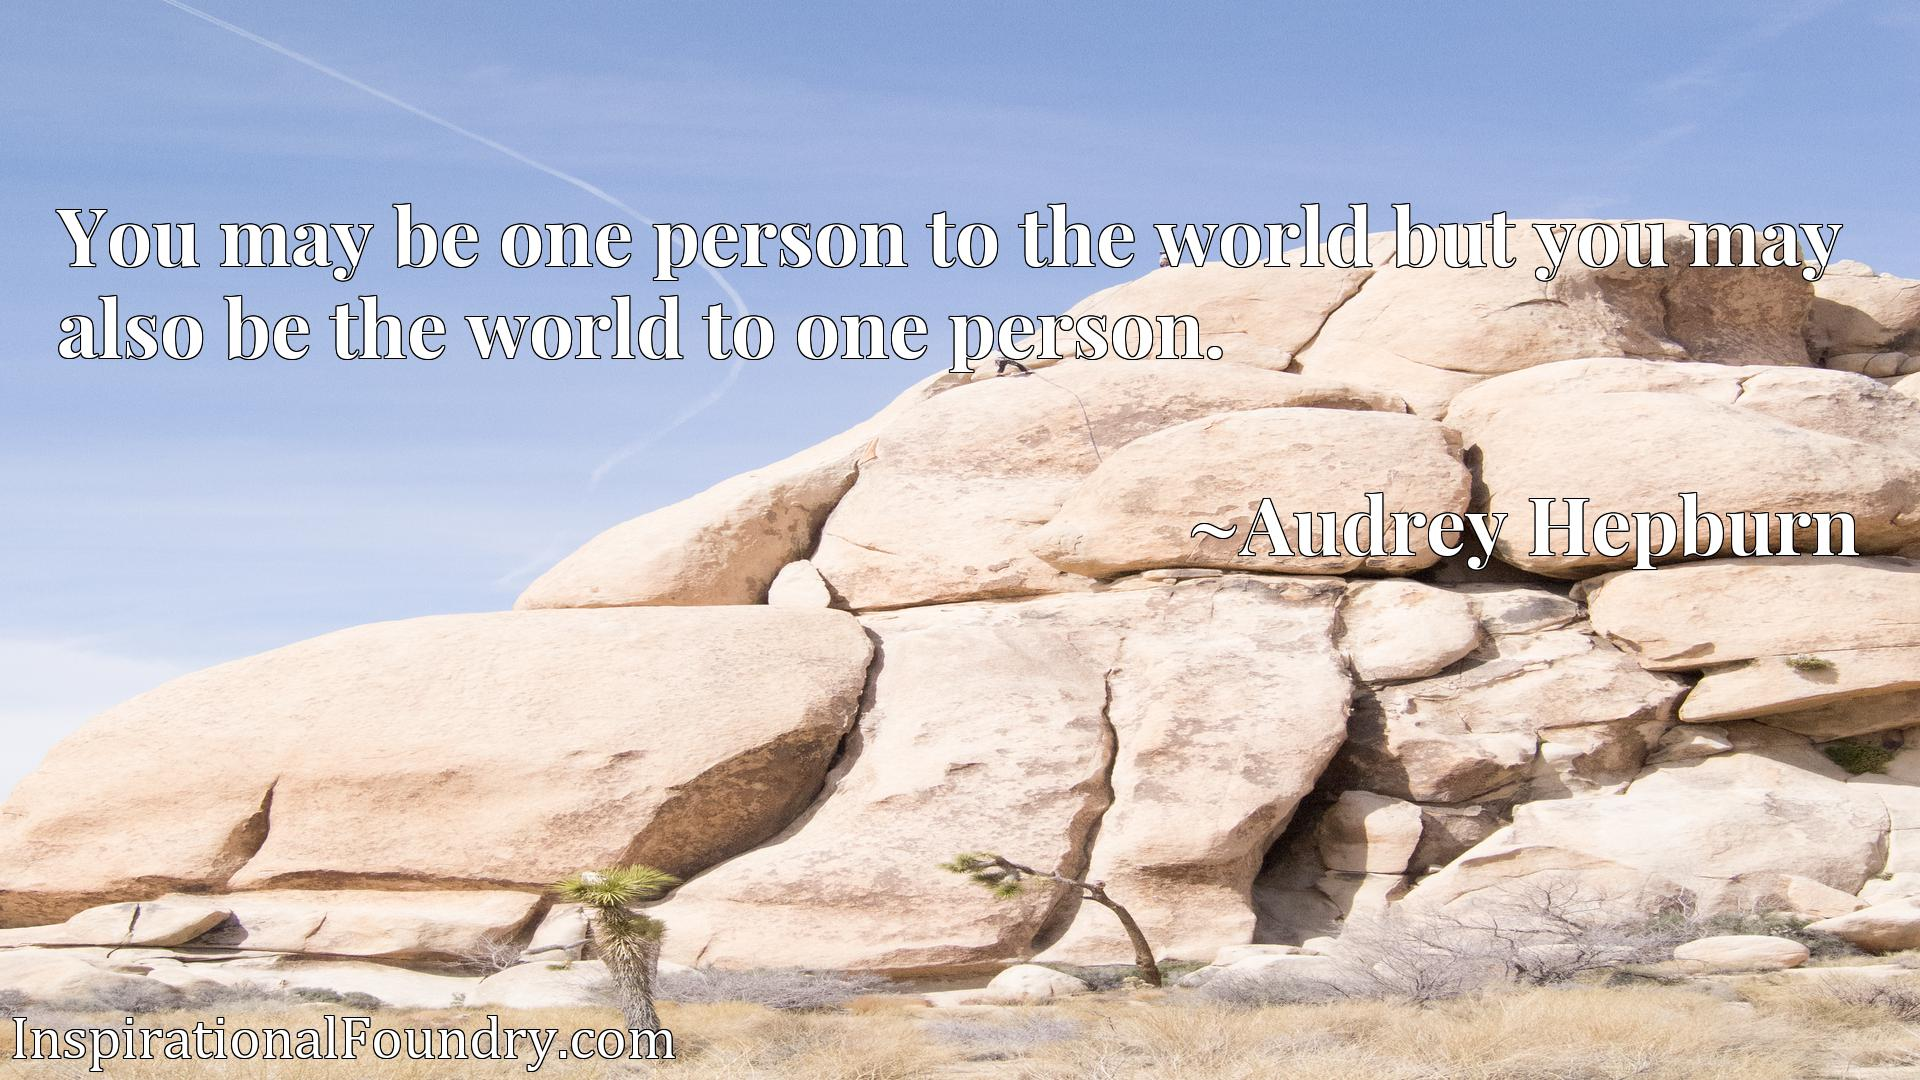 You may be one person to the world but you may also be the world to one person.